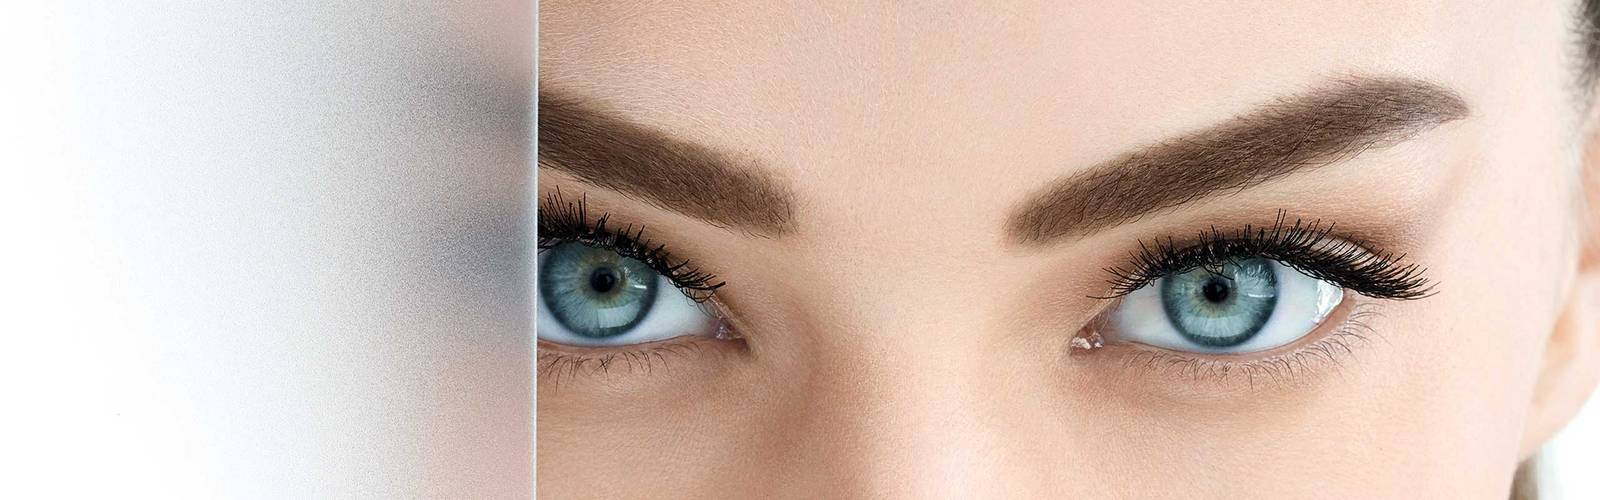 maybelline-brow-shaping-chalk-product-detail-page-main-image-16x5